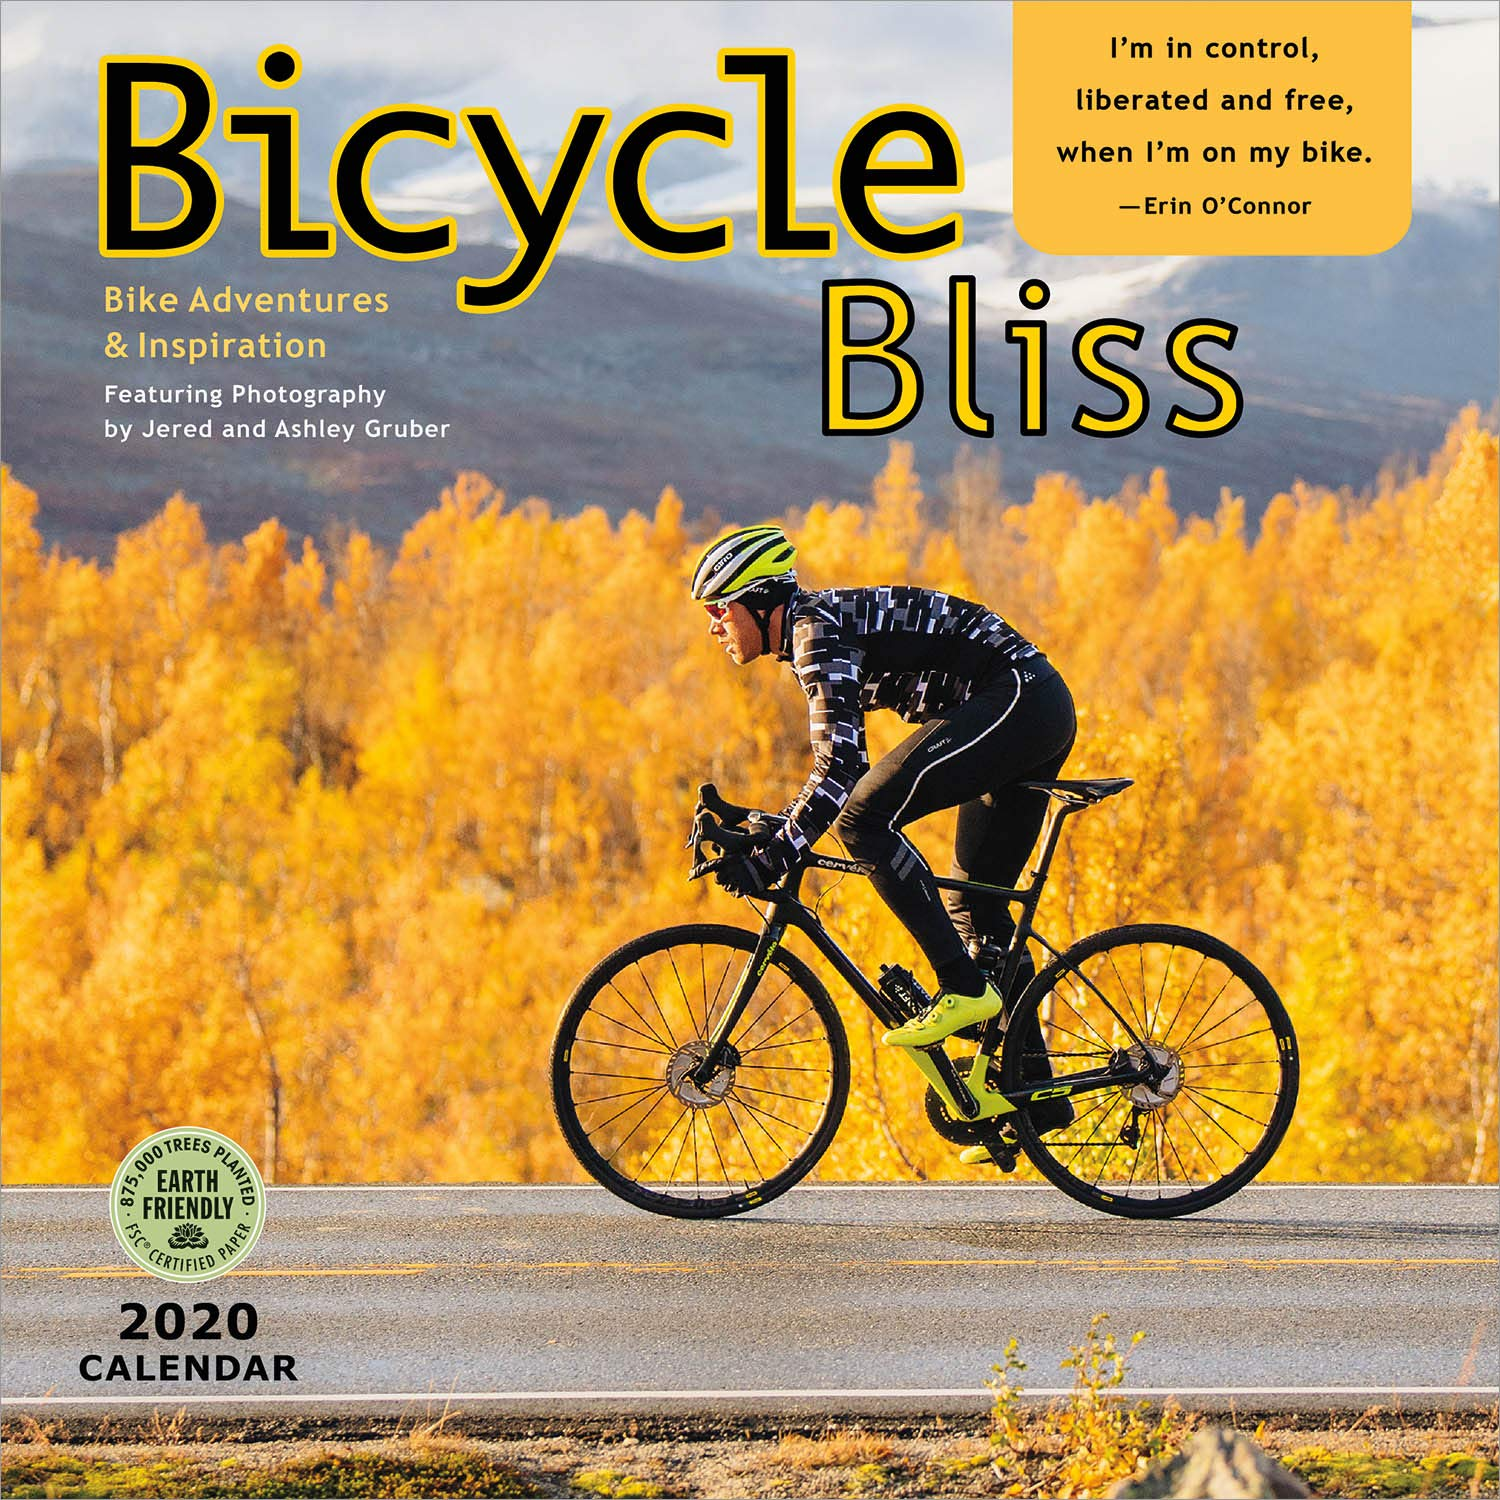 Cycling Calendar 2020 Bicycle Bliss 2020 Wall Calendar: Bike Adventures and Inspiration